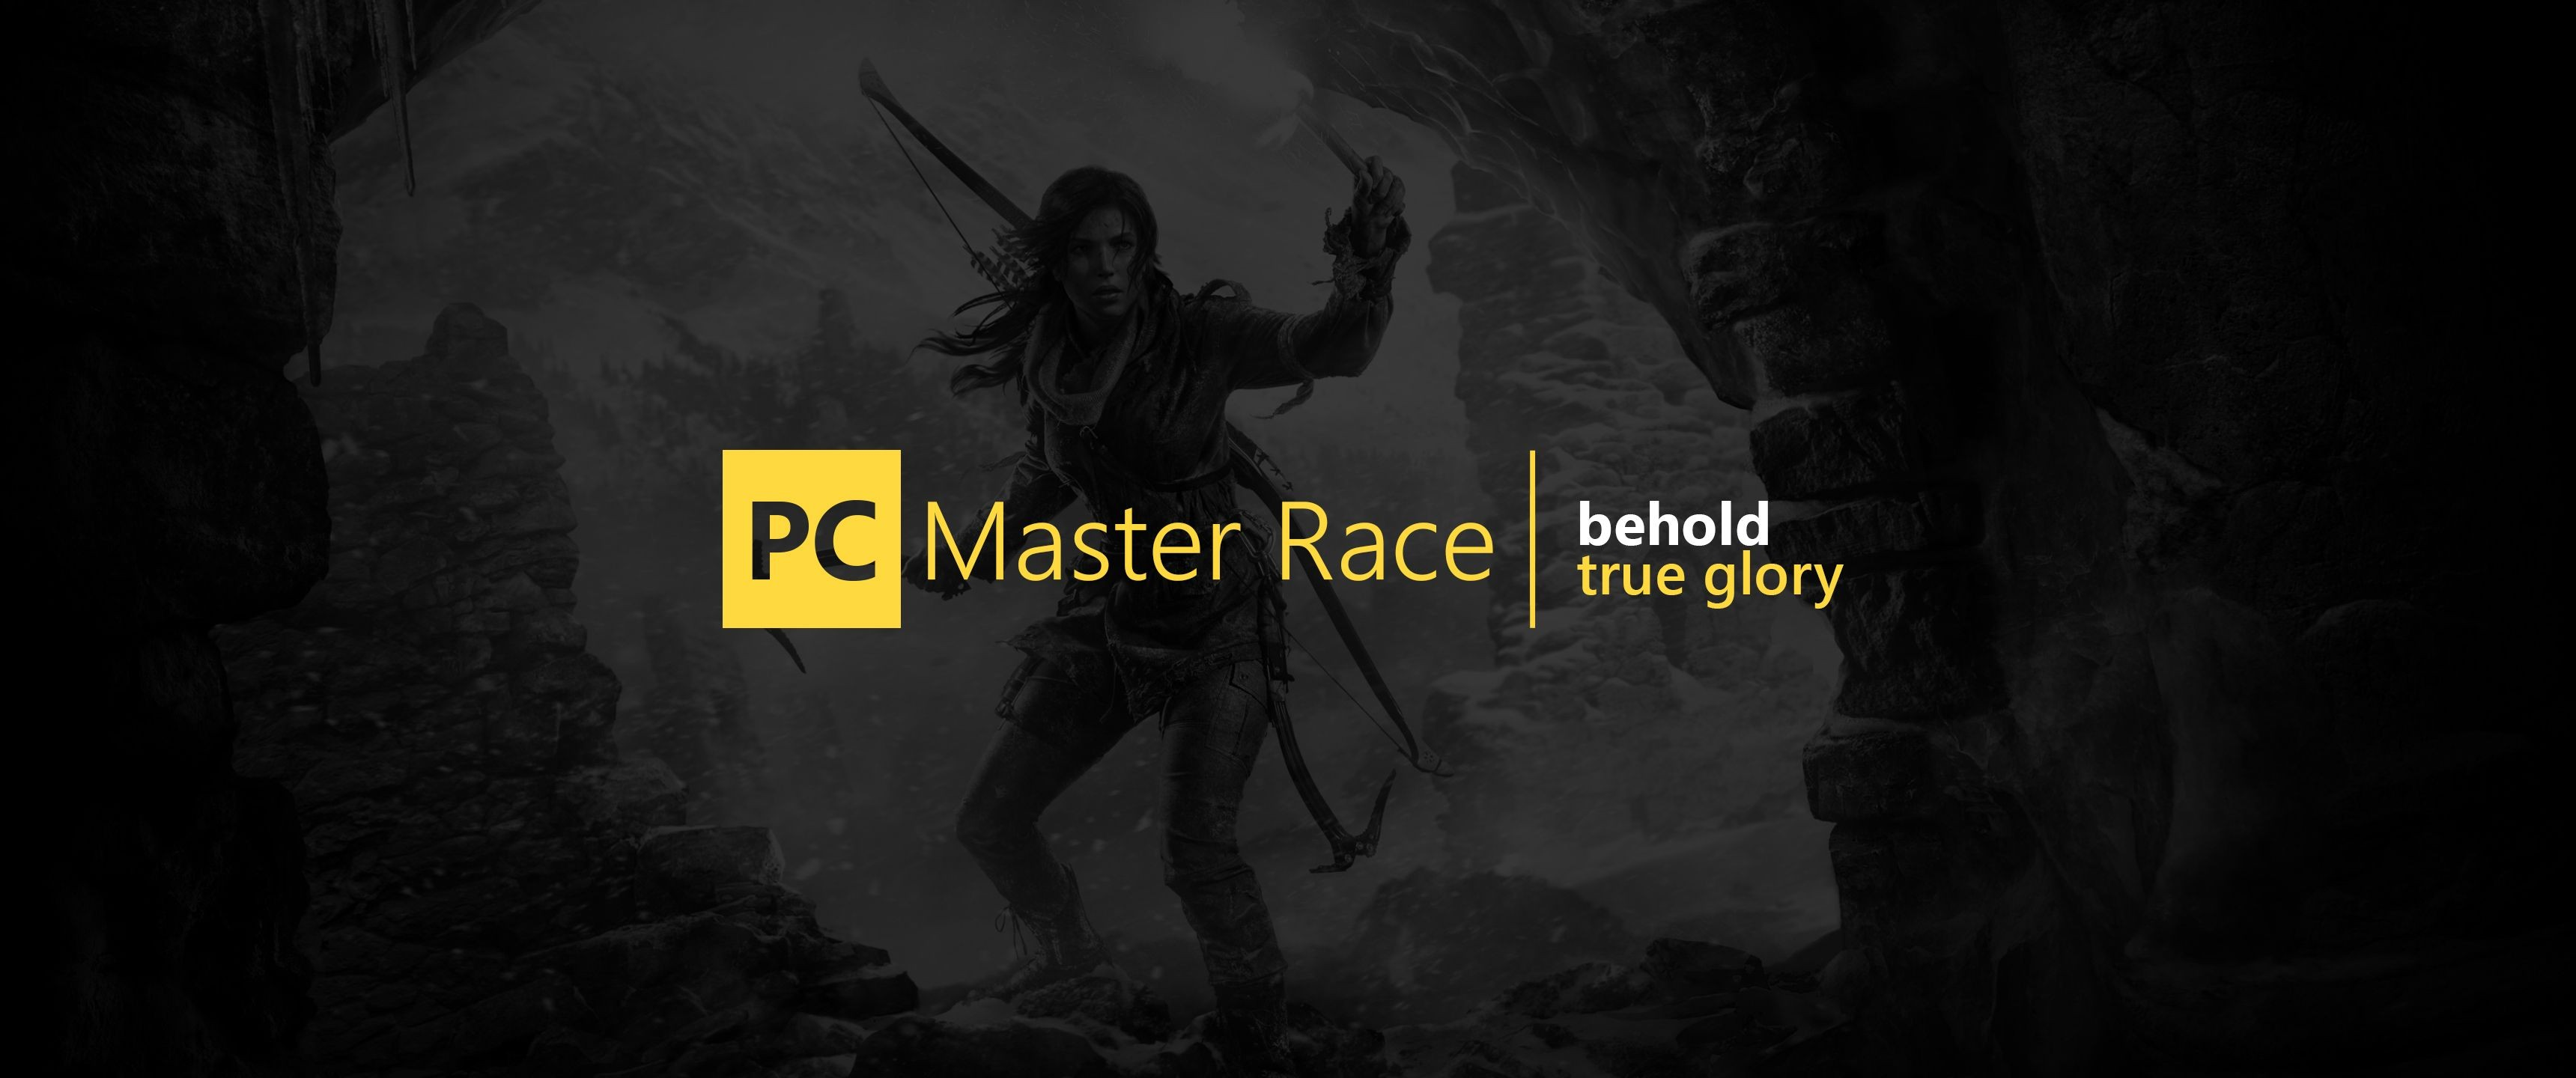 Pcmr Wallpaper: PC Master Race Wallpapers